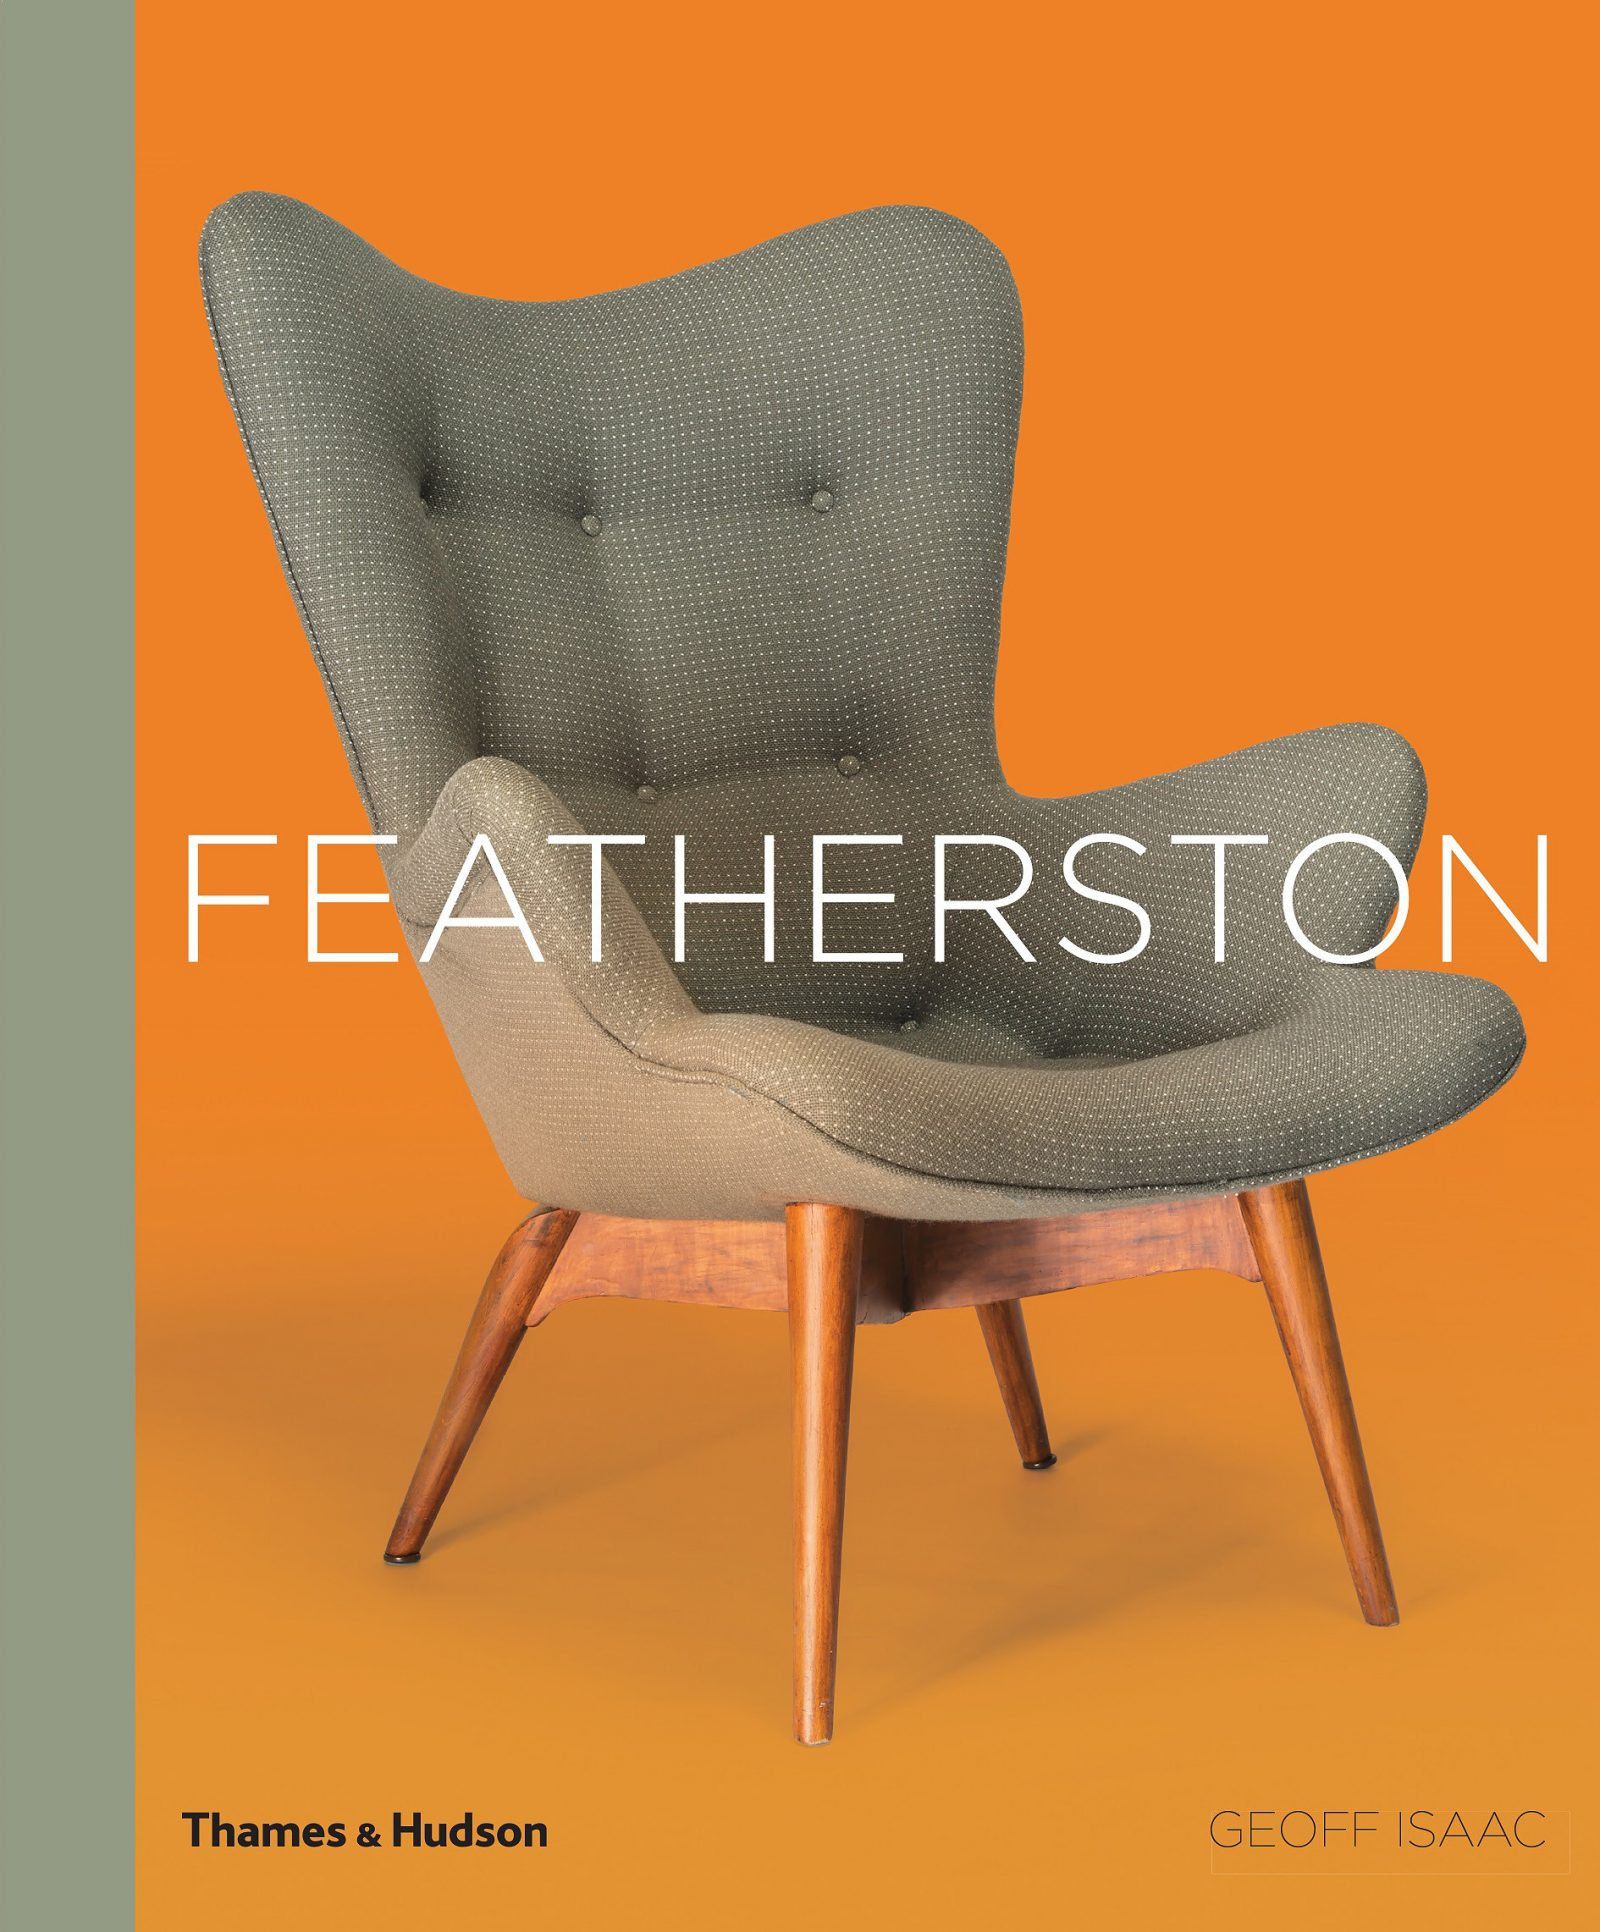 Geoff Isaac - Featherston, the first book to celebrate the life